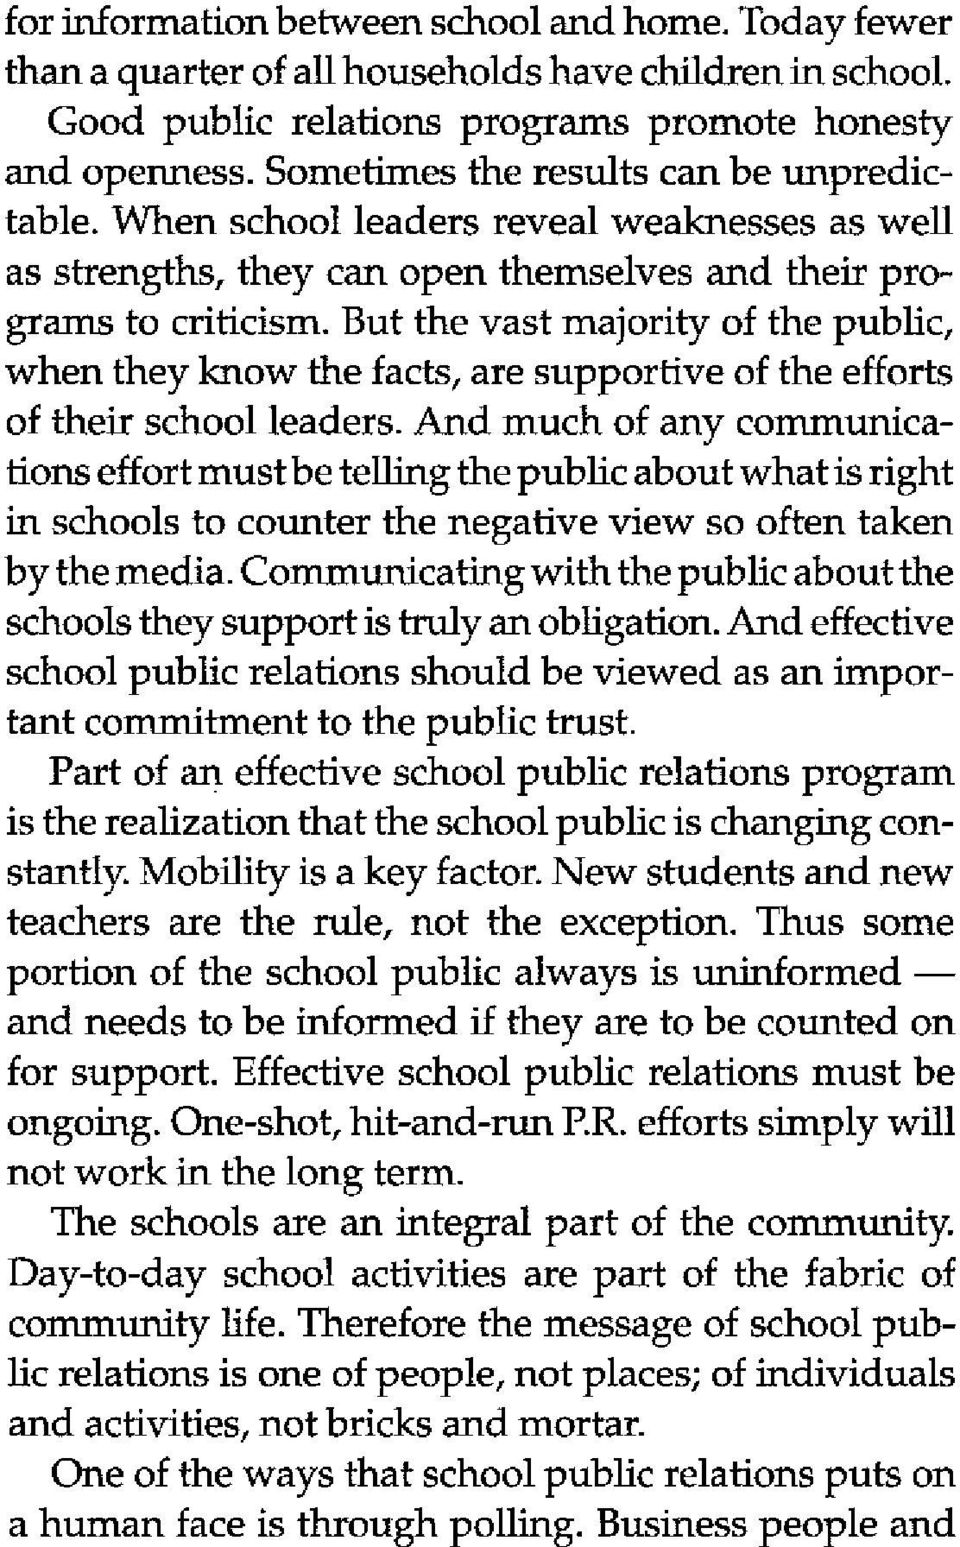 But the vast majority of the public, when they know the facts, are supportive of the efforts of their school leaders.